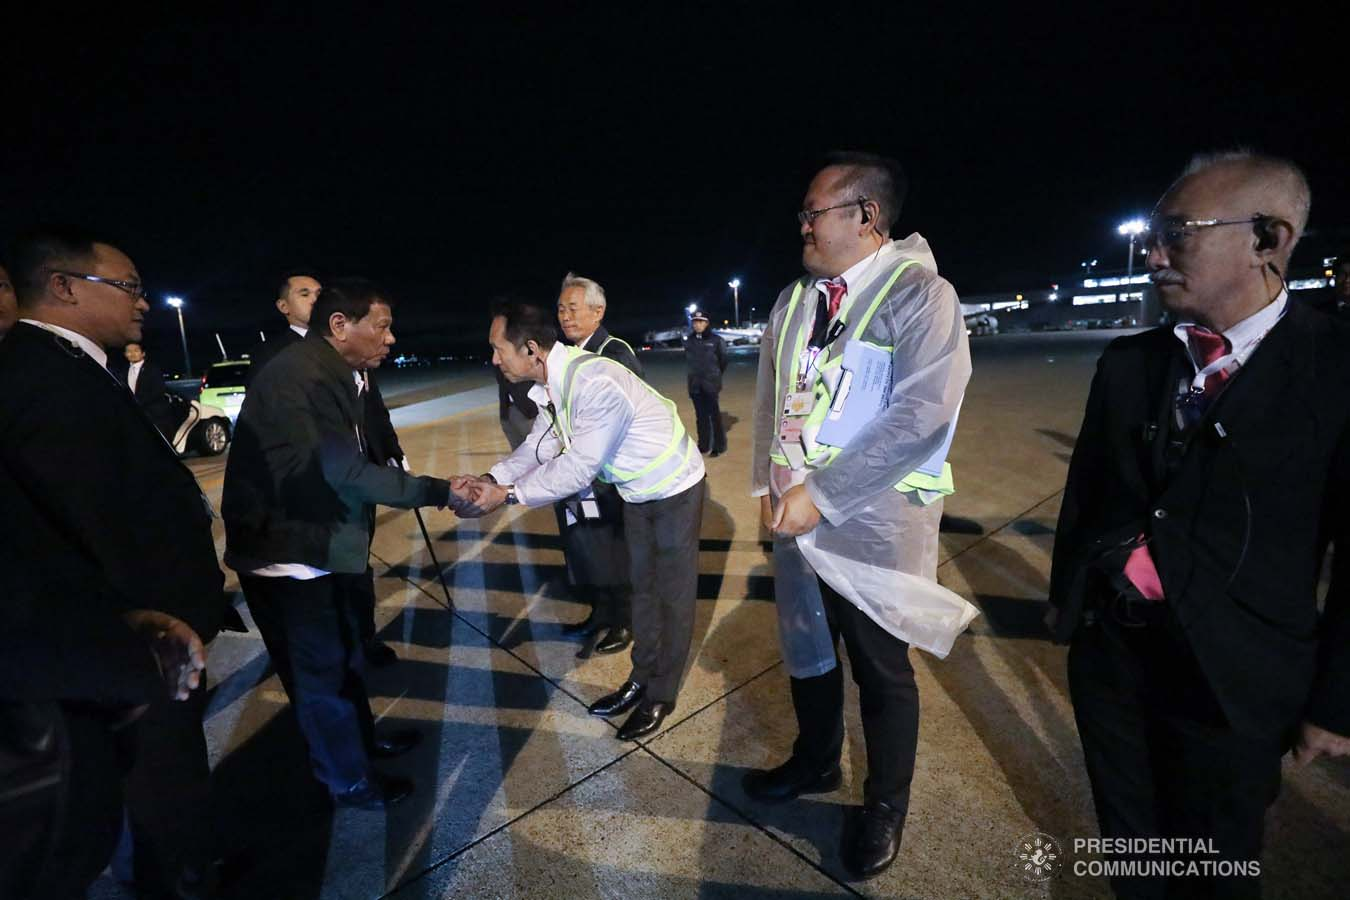 President Rodrigo Roa Duterte bids farewell to one of the members of the send-off party before his departure at the Haneda International Airport in Tokyo, Japan on October 22, 2019. The President attended the Ceremonies of the Accession to the Throne of His Majesty Emperor Naruhito. SIMEON CELI JR./PRESIDENTIAL PHOTO